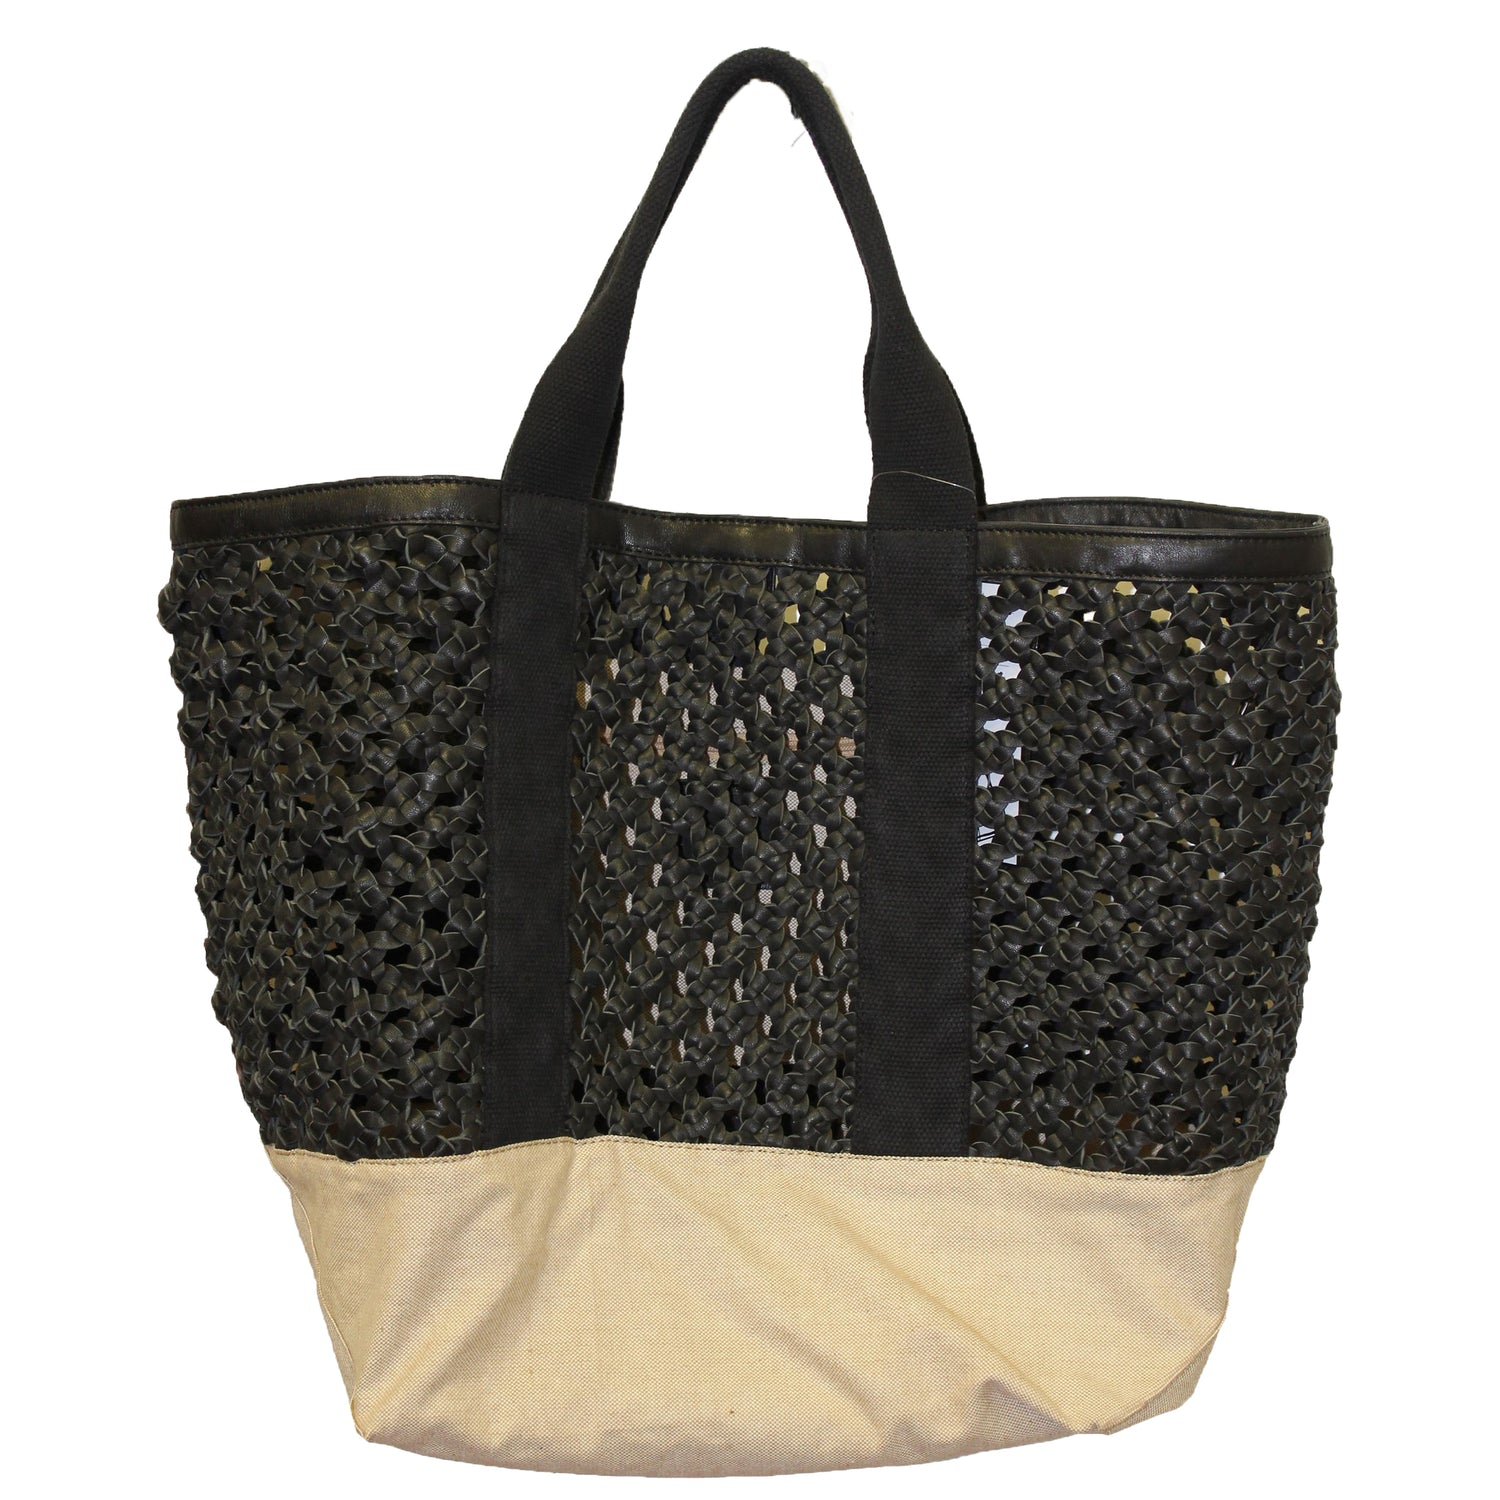 Black Woven Leather & Canvas Tote